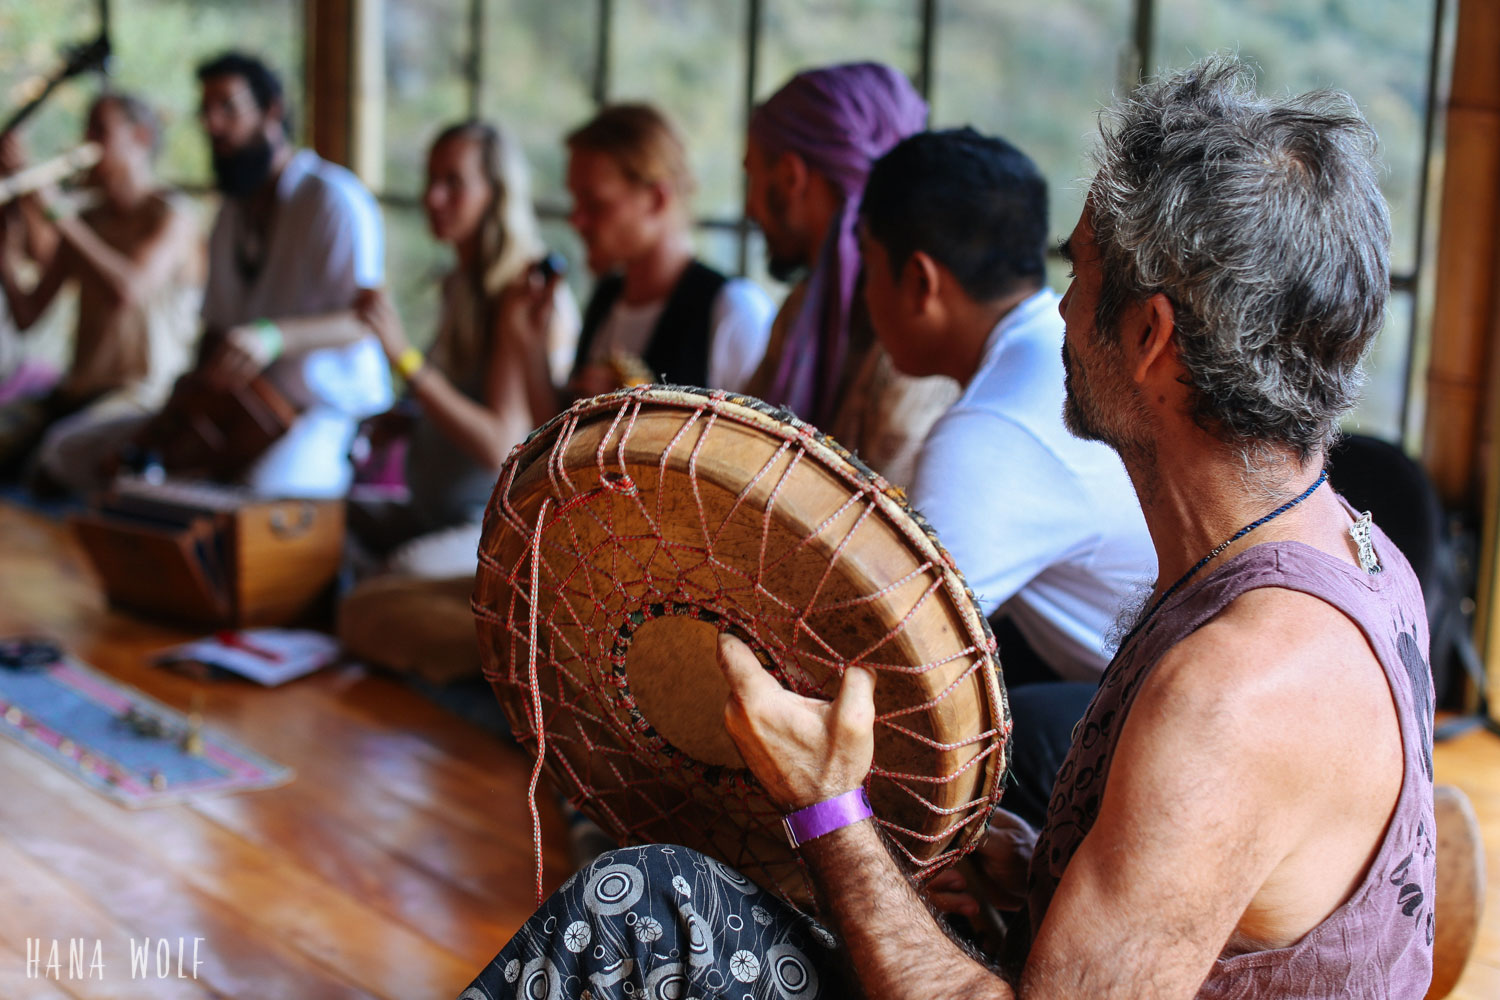 kula-collective-yoga-teacher-training-sacred-ceremony.jpg